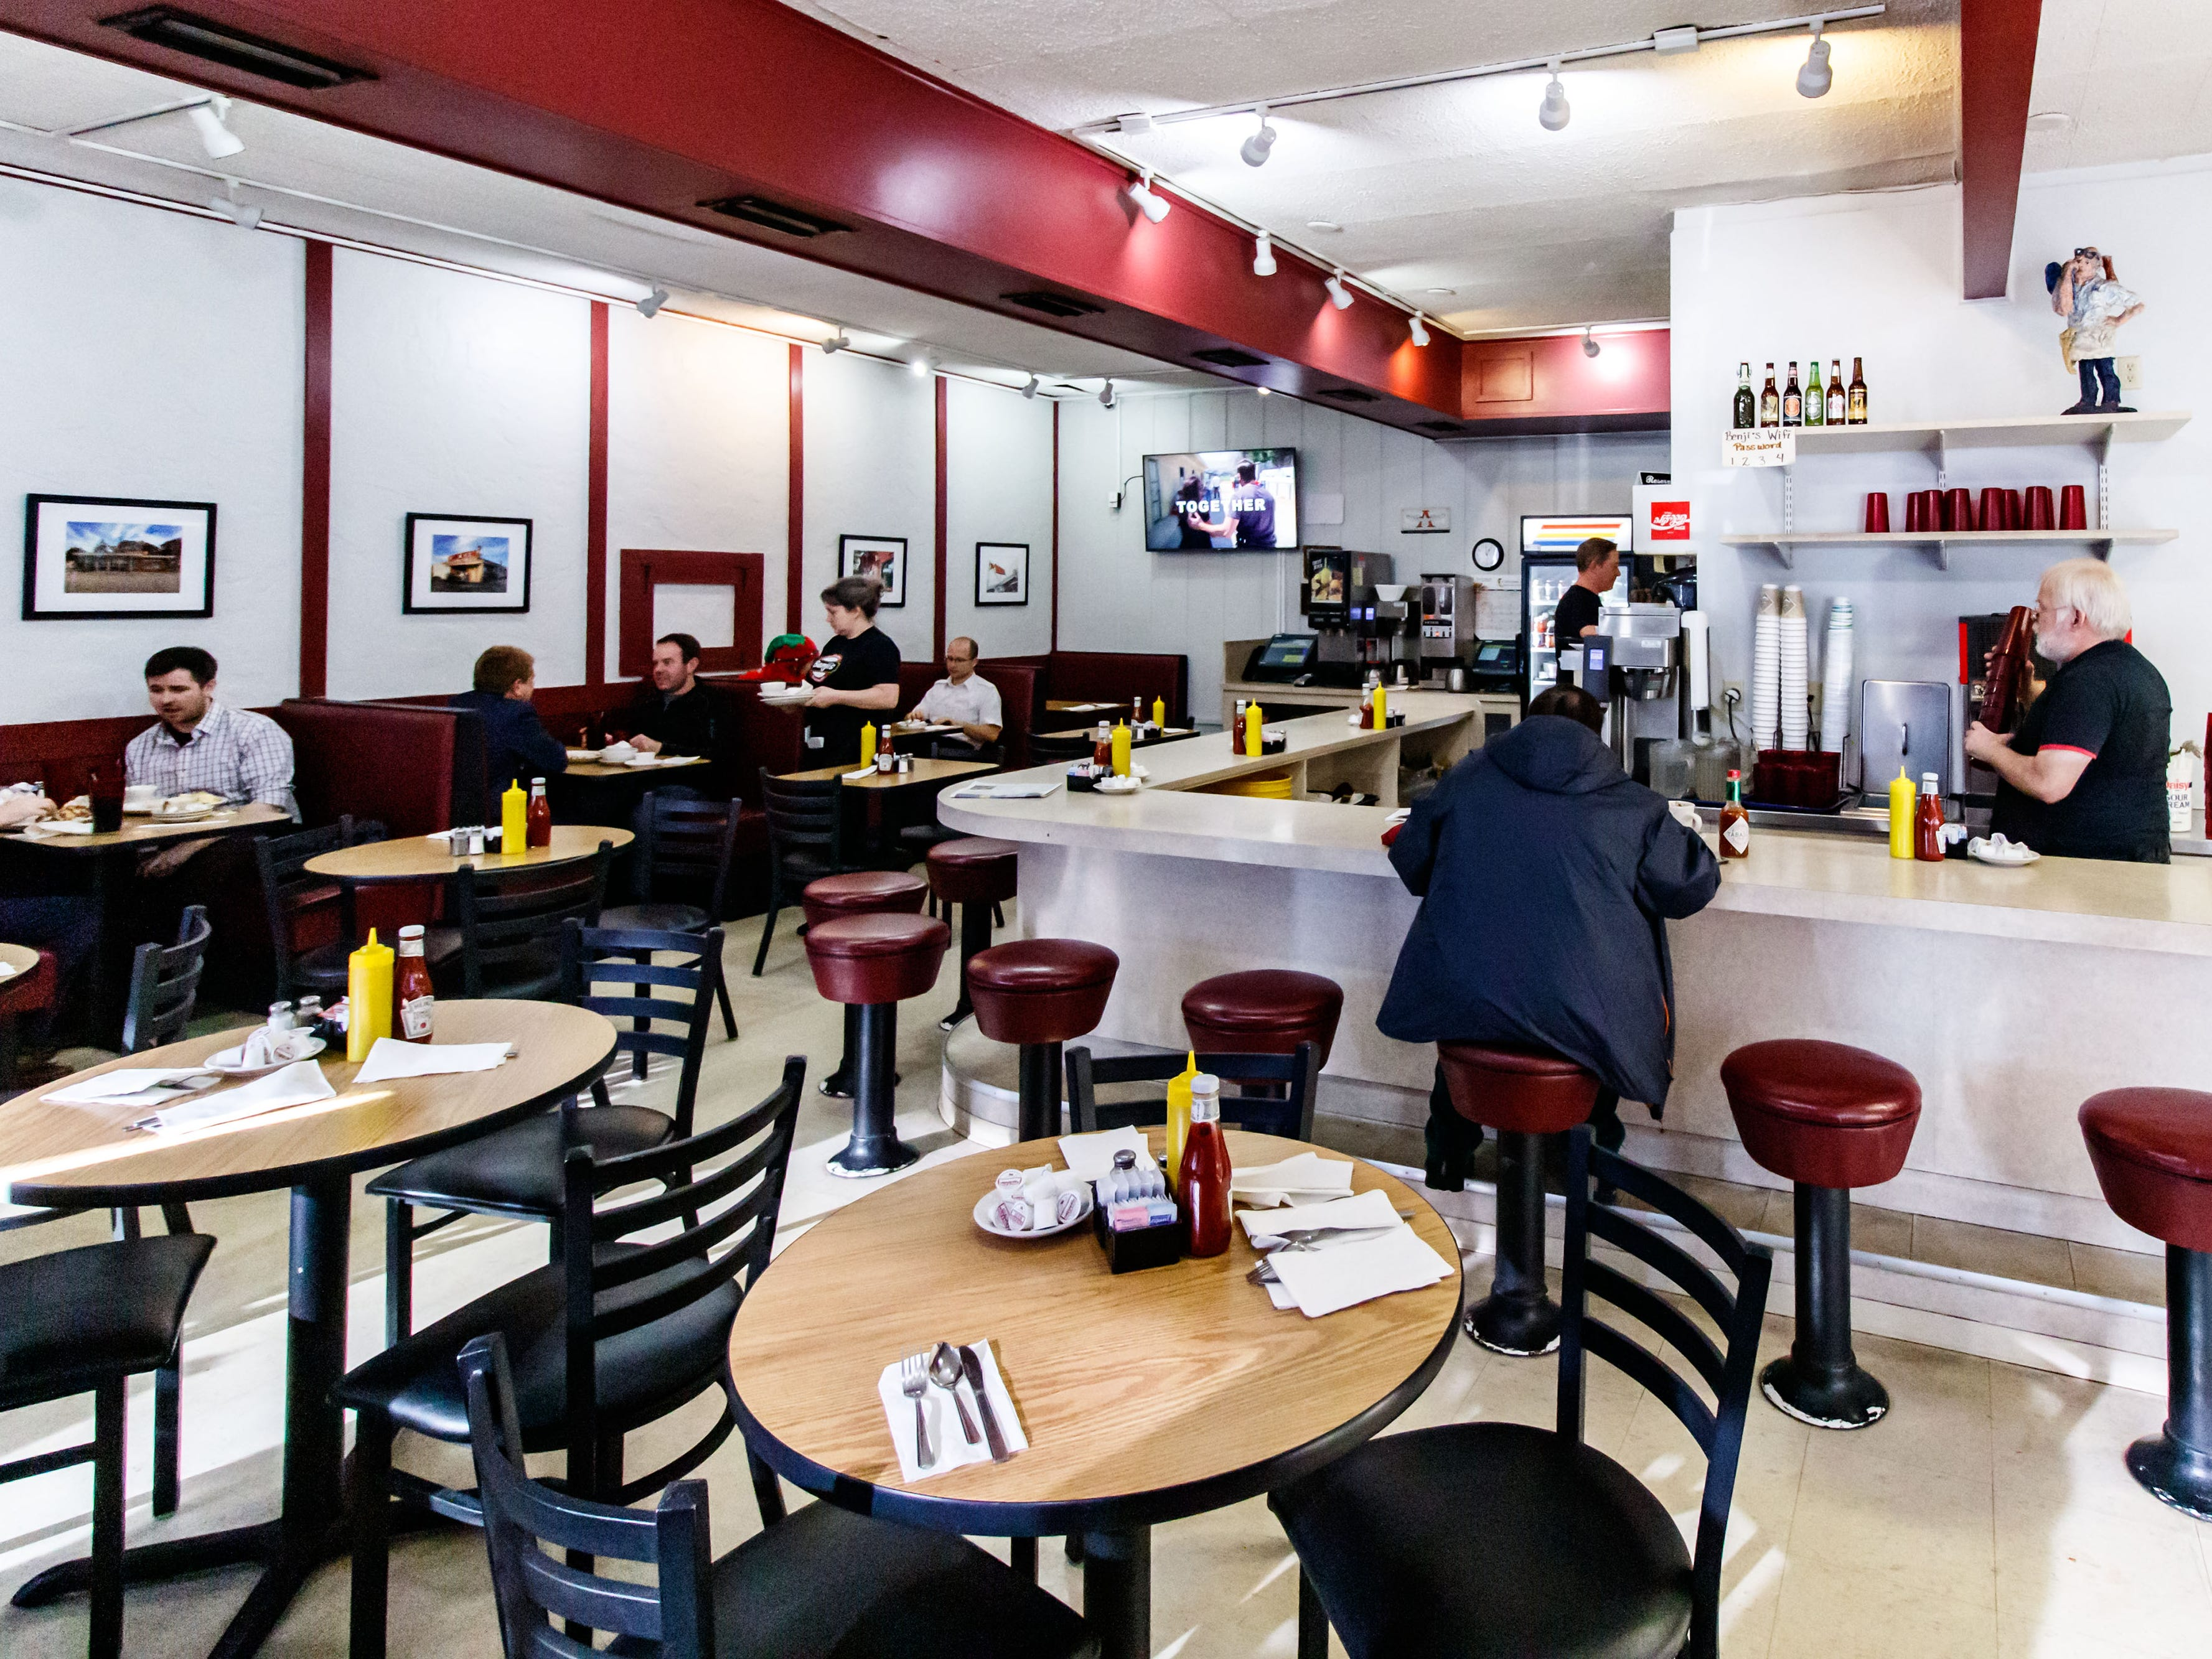 Benji's Delicatessen in Shorewood serves breakfast, lunch and dinner, and features ample seating along with take out.